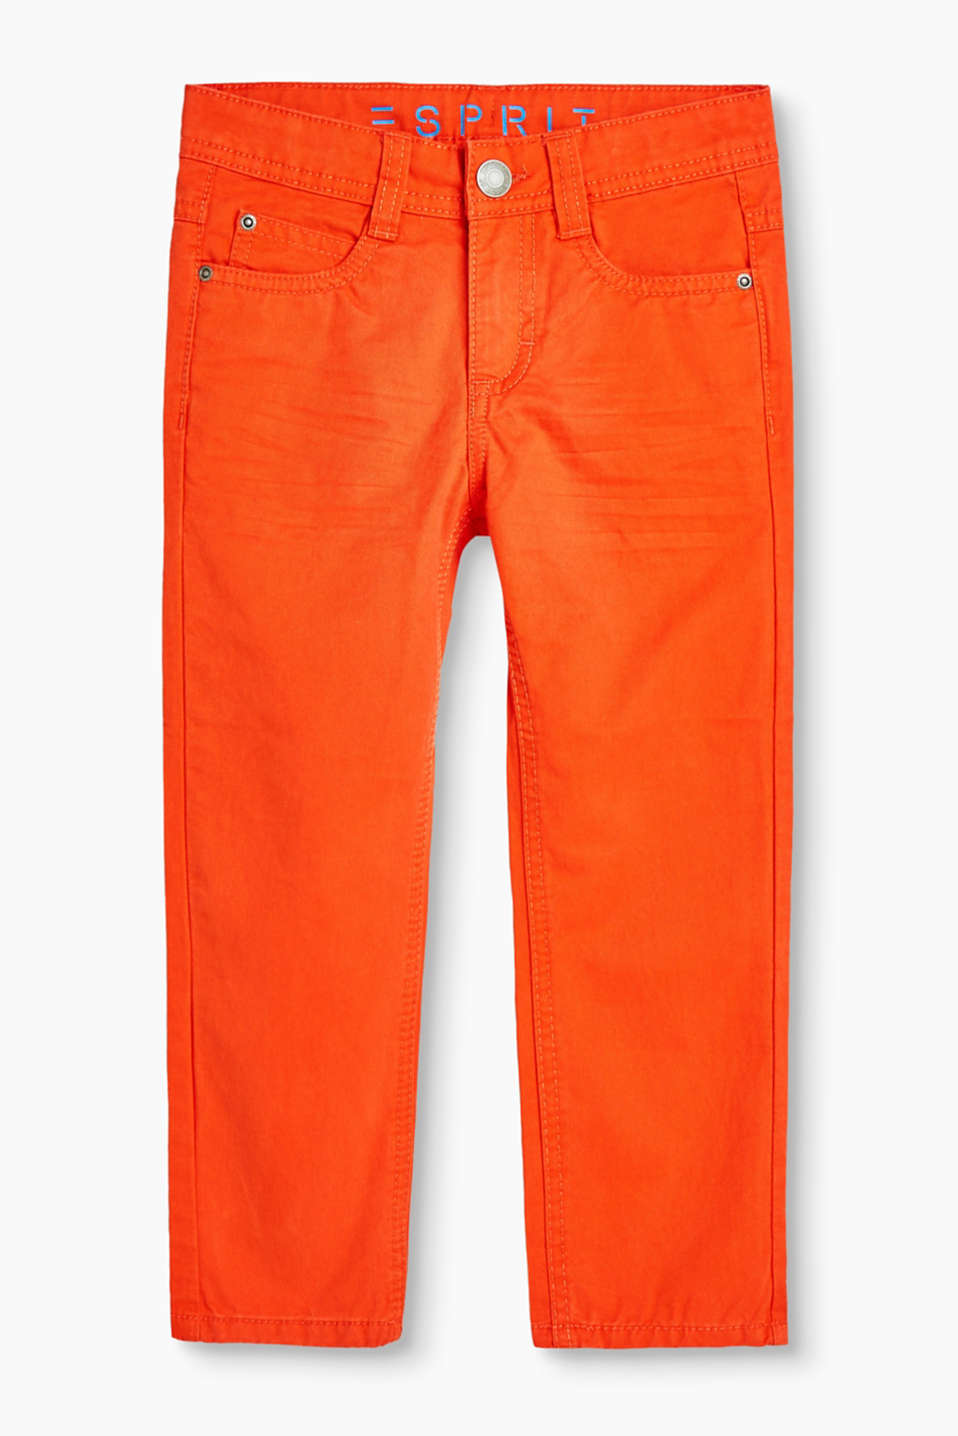 Basic, cotton twill trousers with whiskering and an adjustable waistband